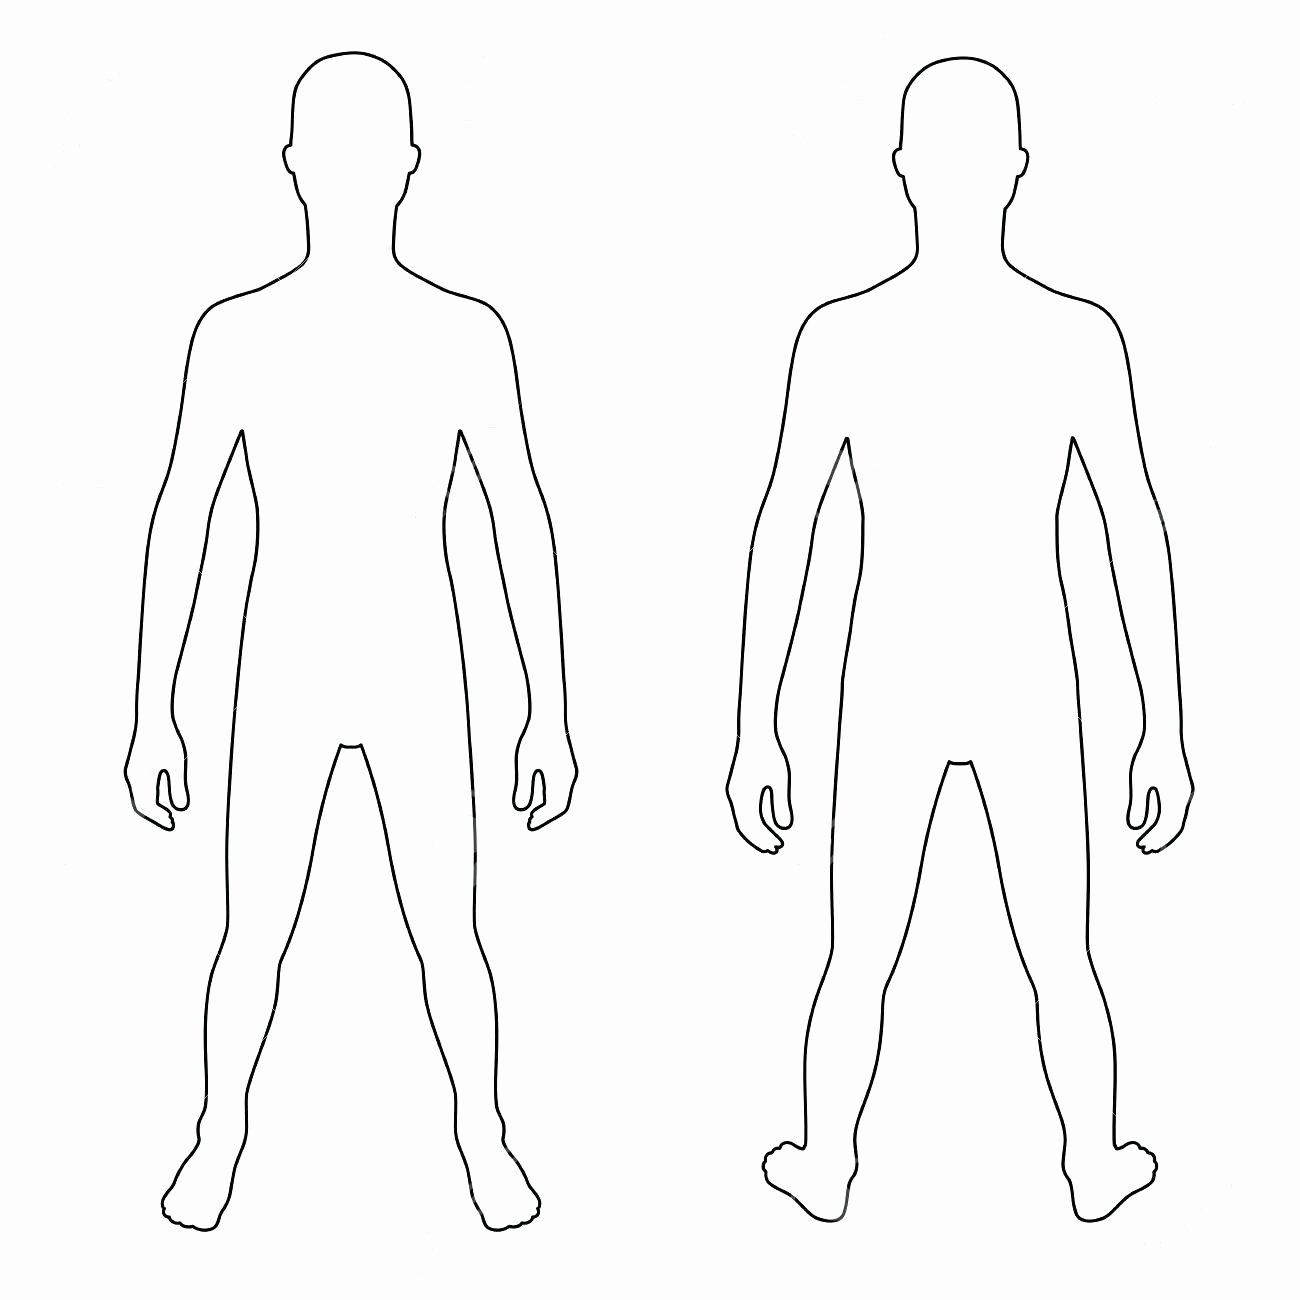 Blank Female Body Template Luxury Human Body Outline